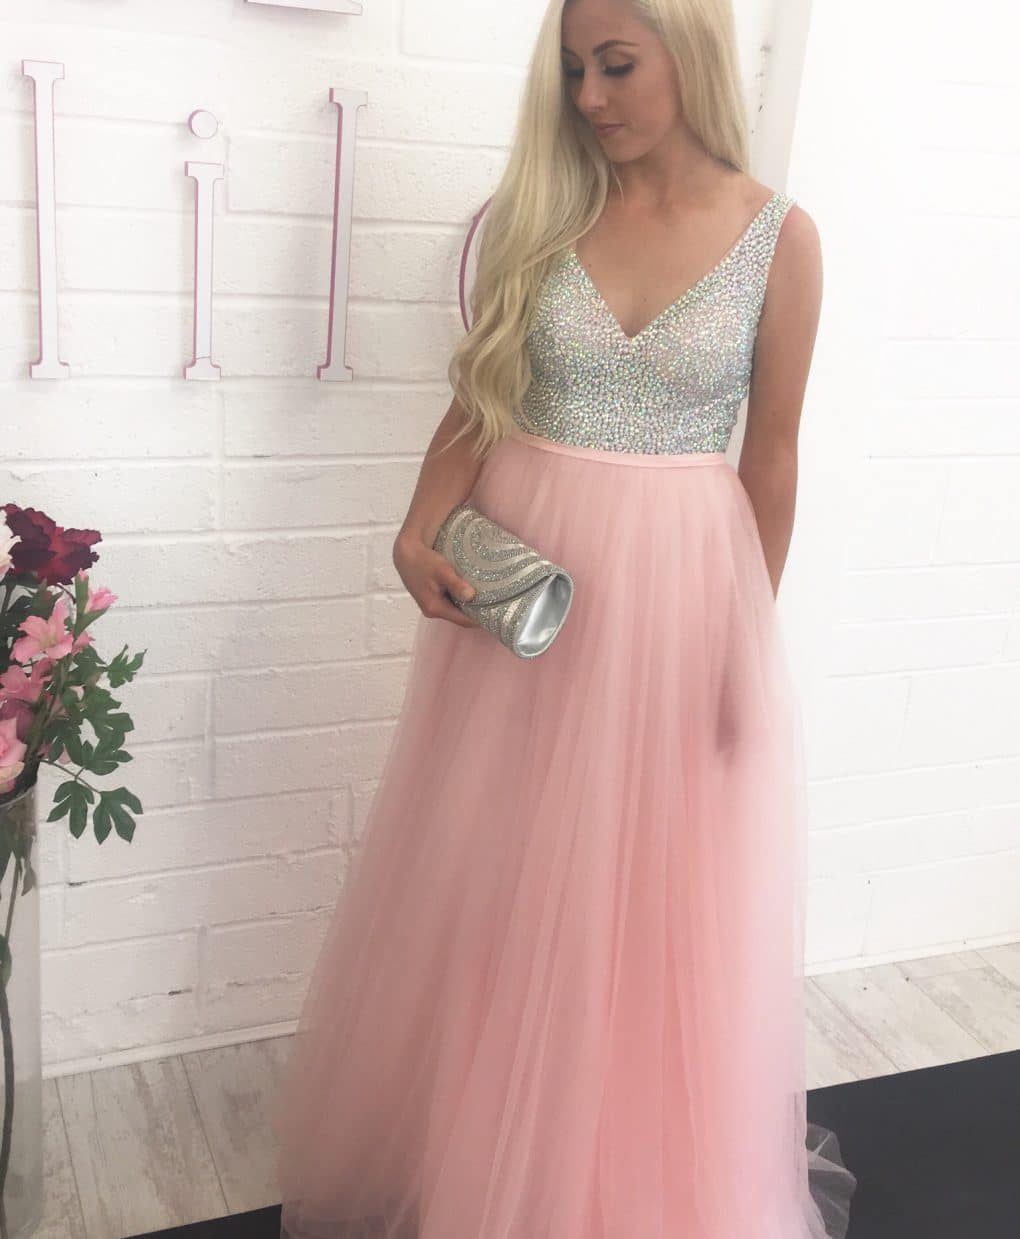 Gino-Cerruti-Pink-Princess-Gown-AnnMaire-2